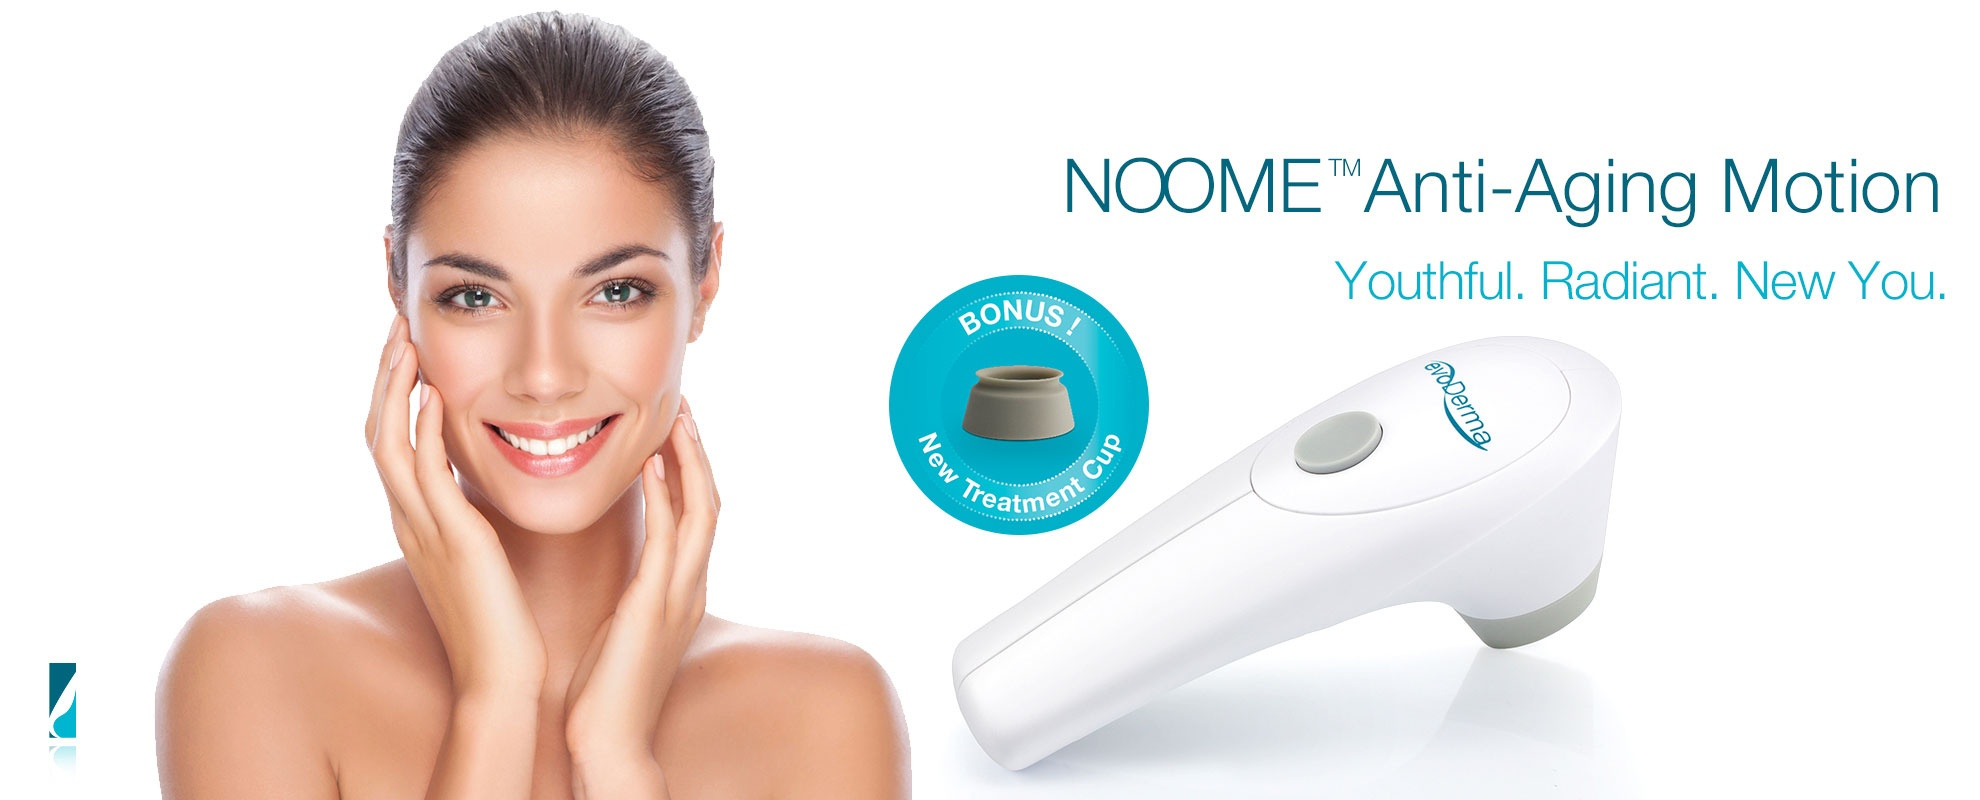 evoDERMA NOOME Anti-Aging Motion